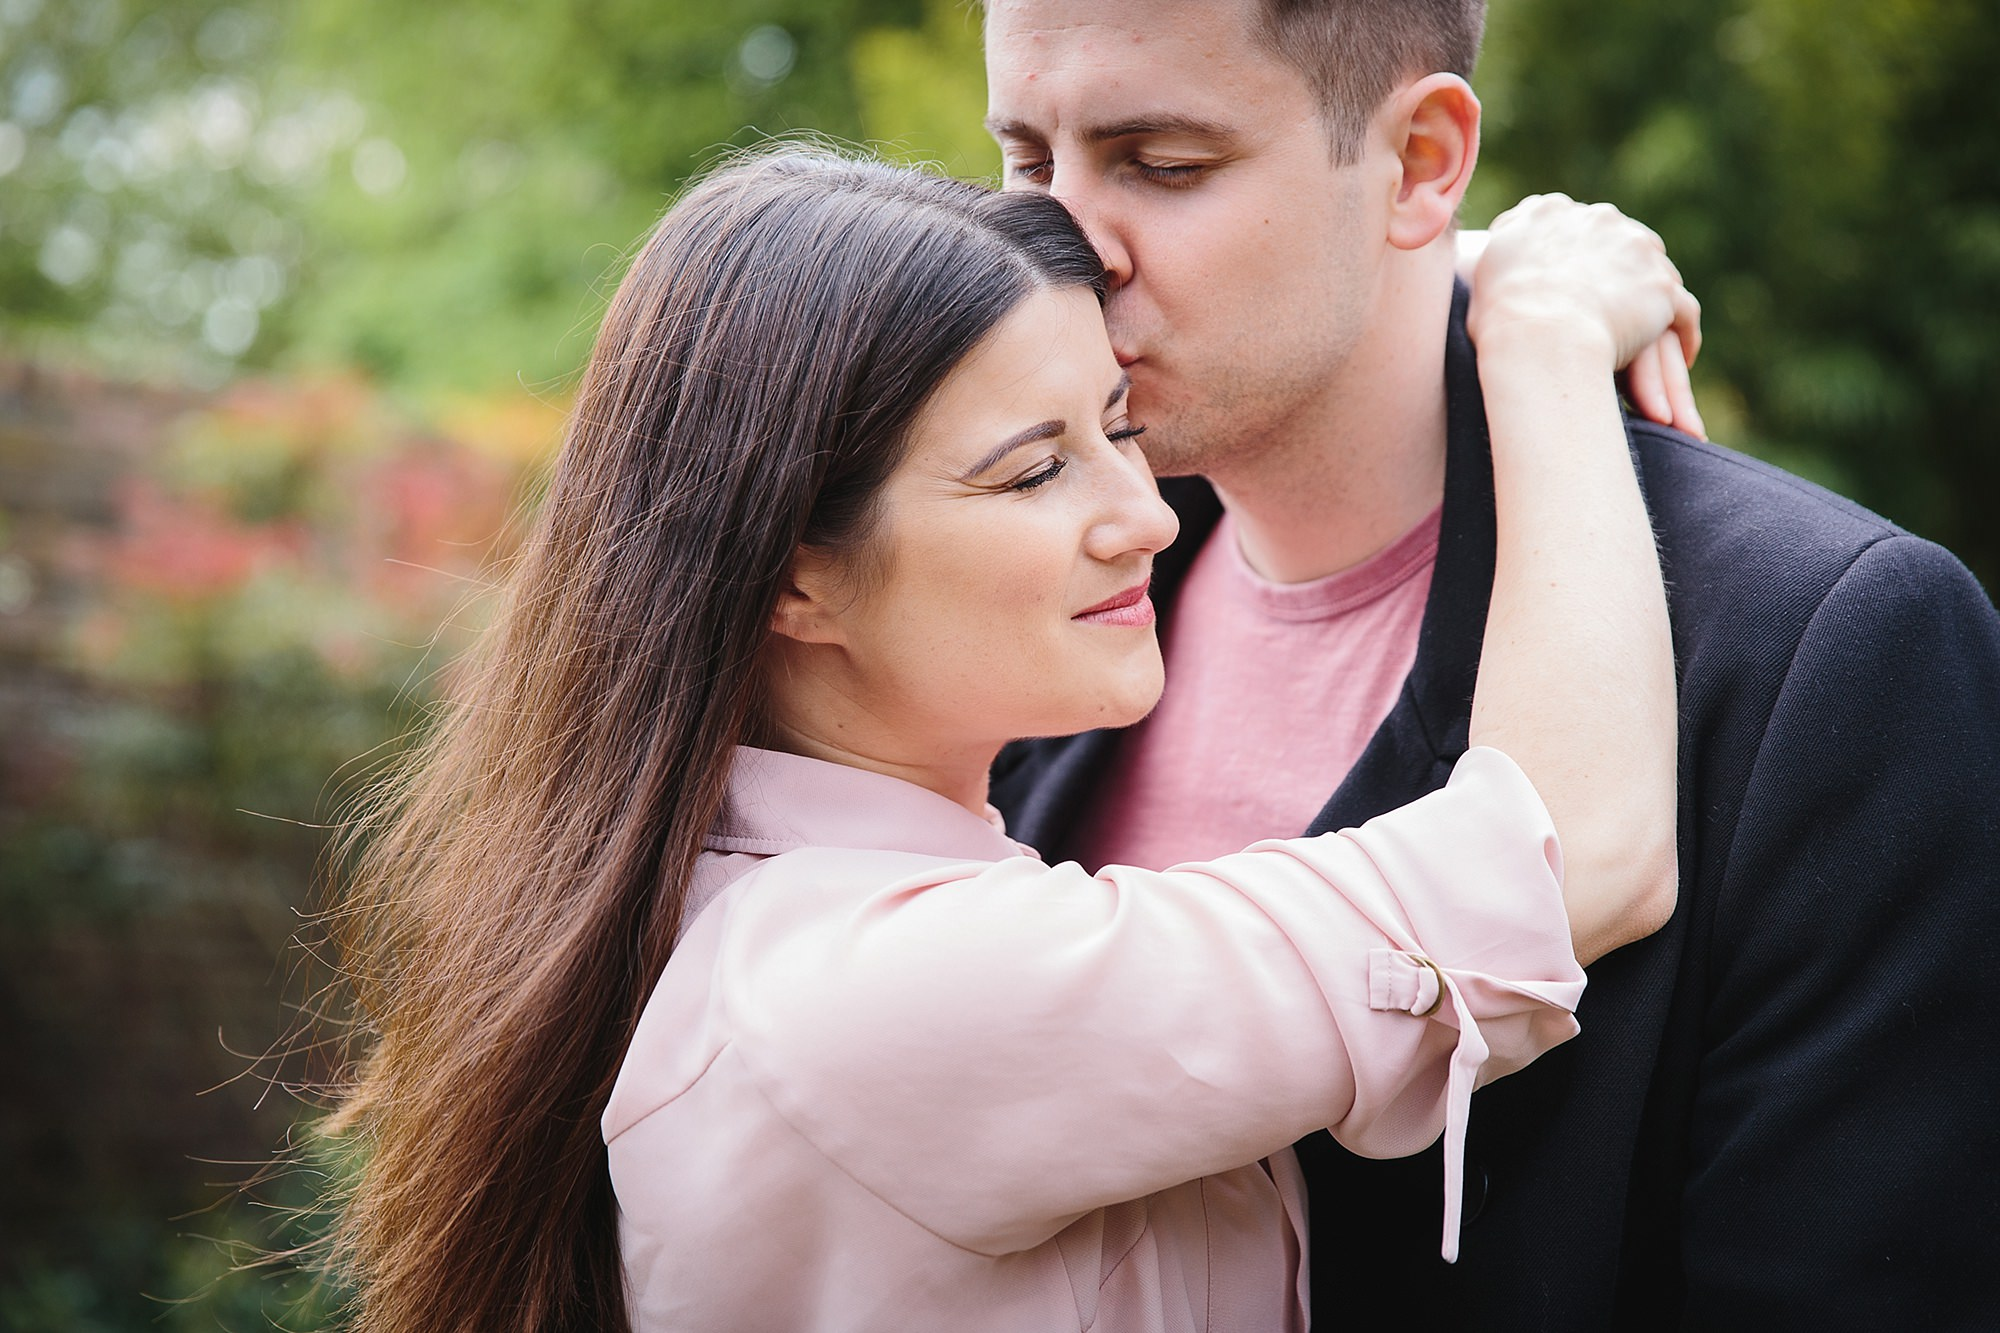 Streatham engagement shoot - bride and groom hug